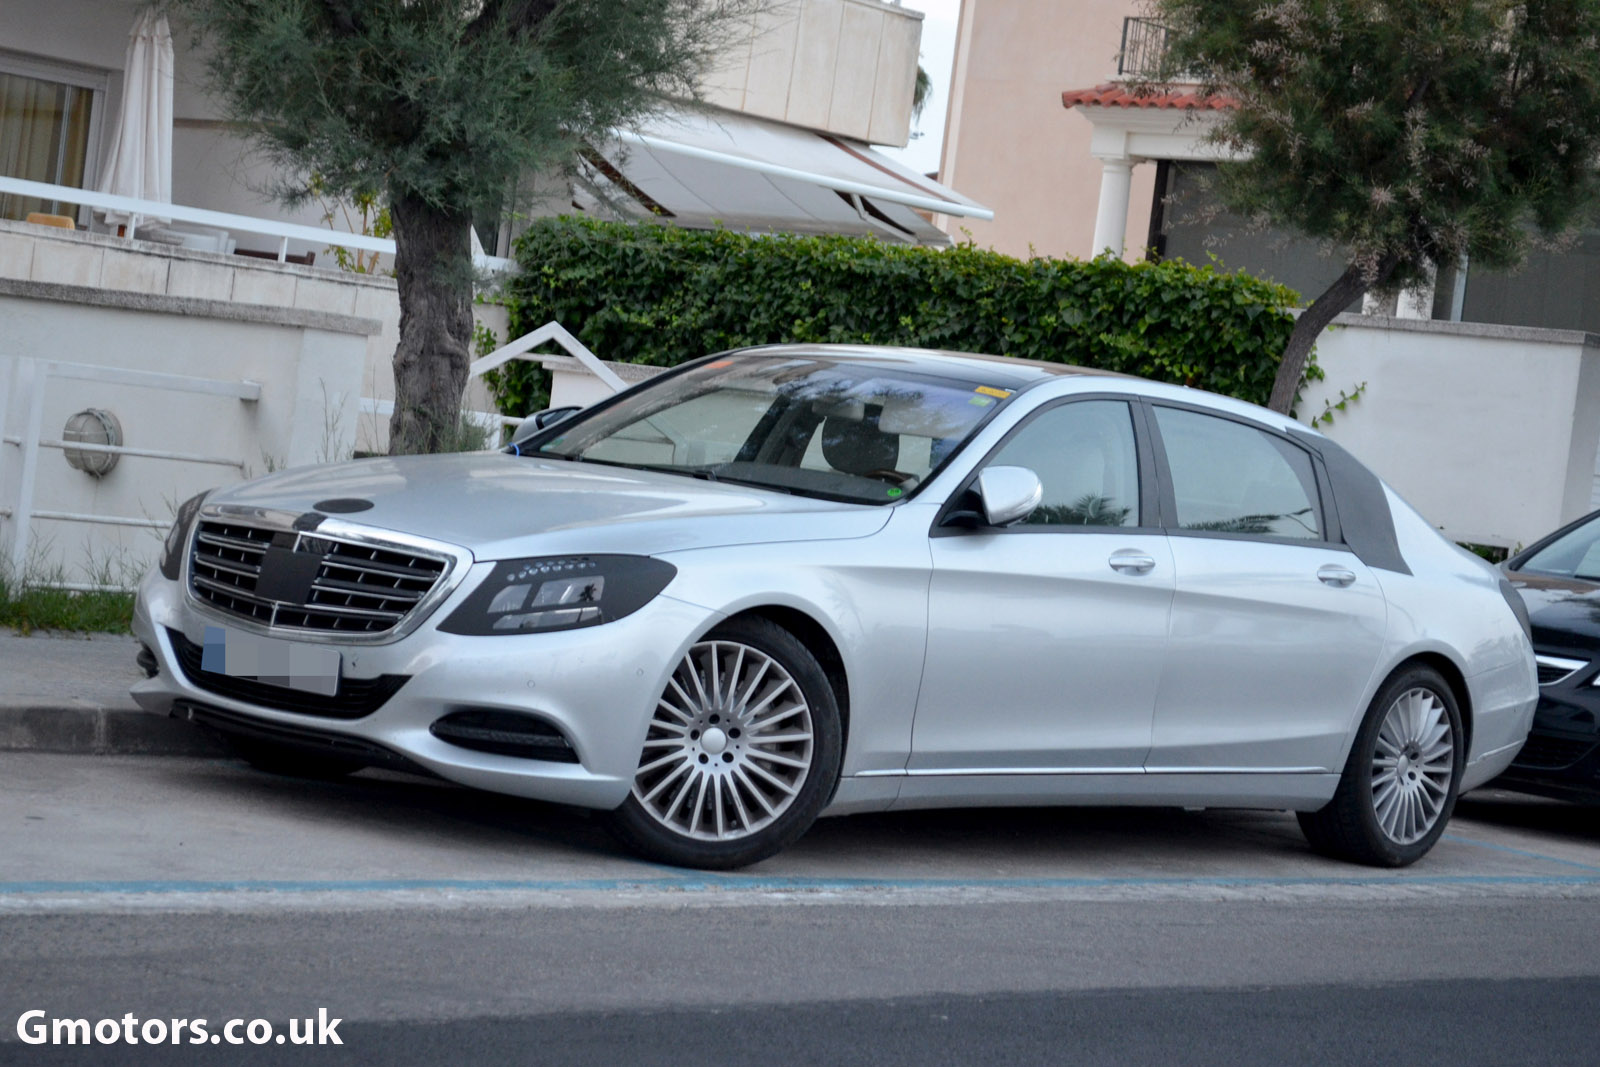 2014 extra long Mercedes S-Class Grand/Grosser